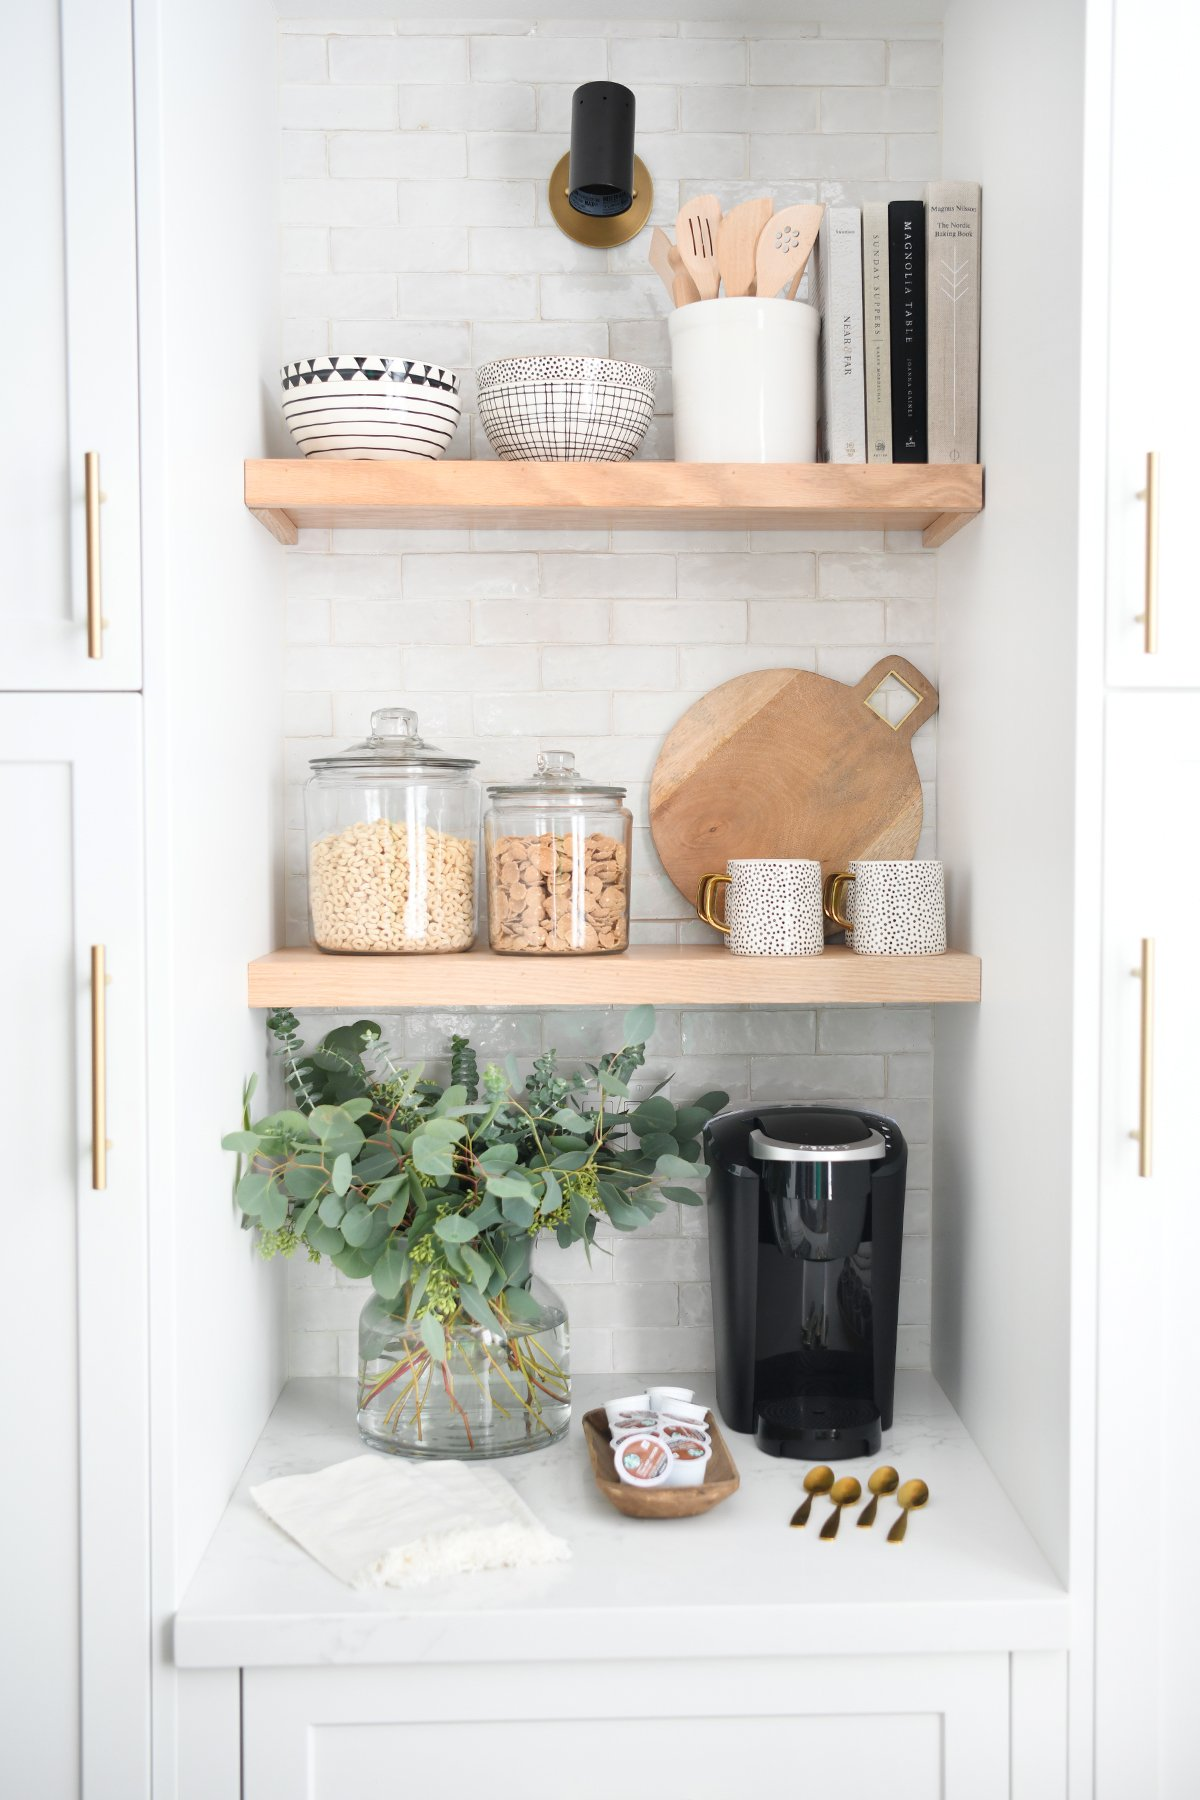 creating a welcoming home for guests